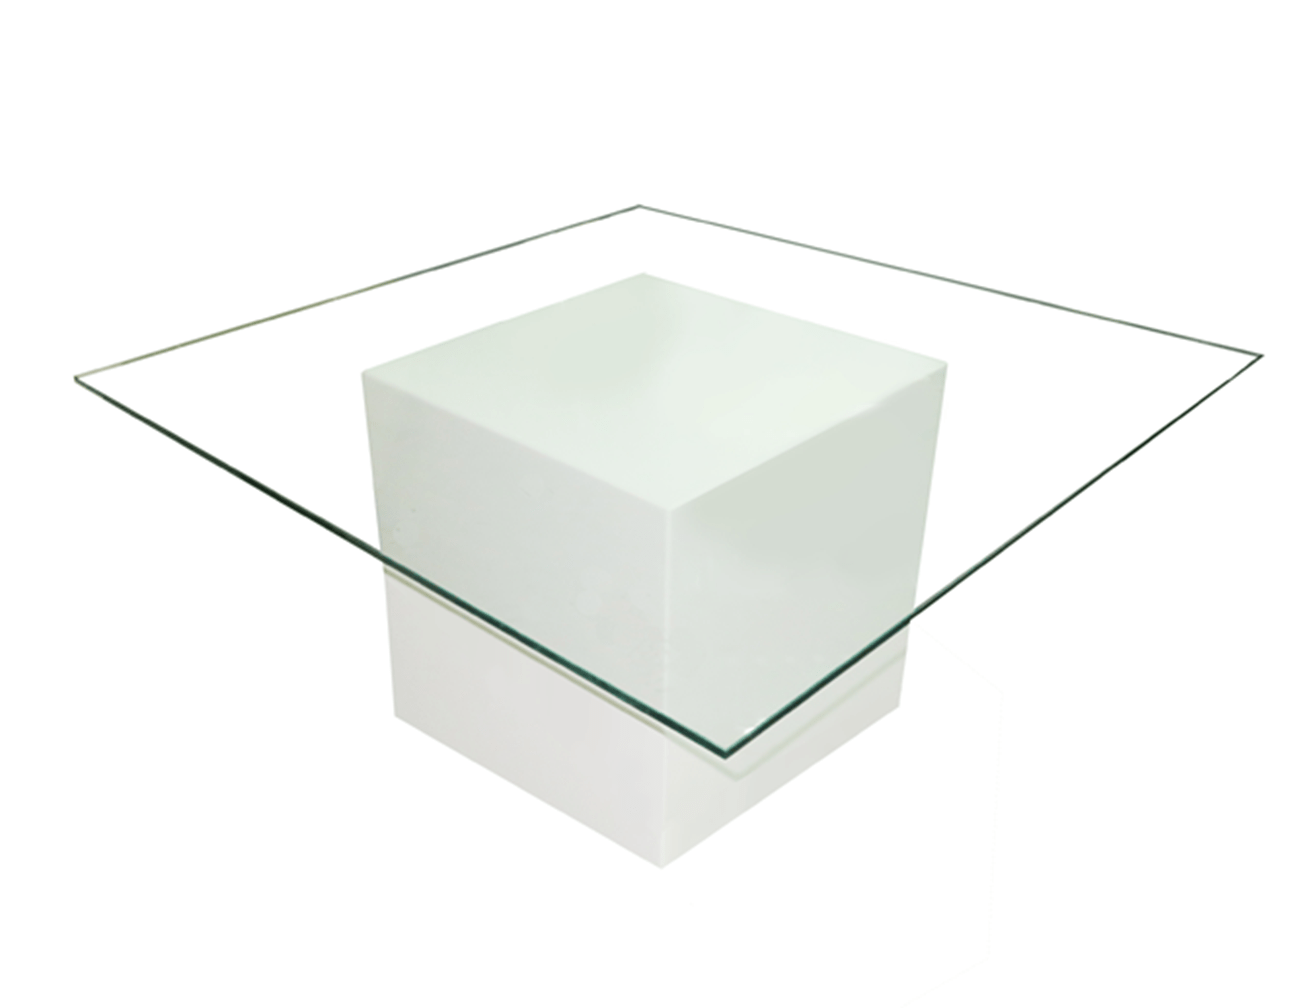 Le Minou Square Glass Coffee Table Furniture Rentals In Dubai Abu Dhabi Uae